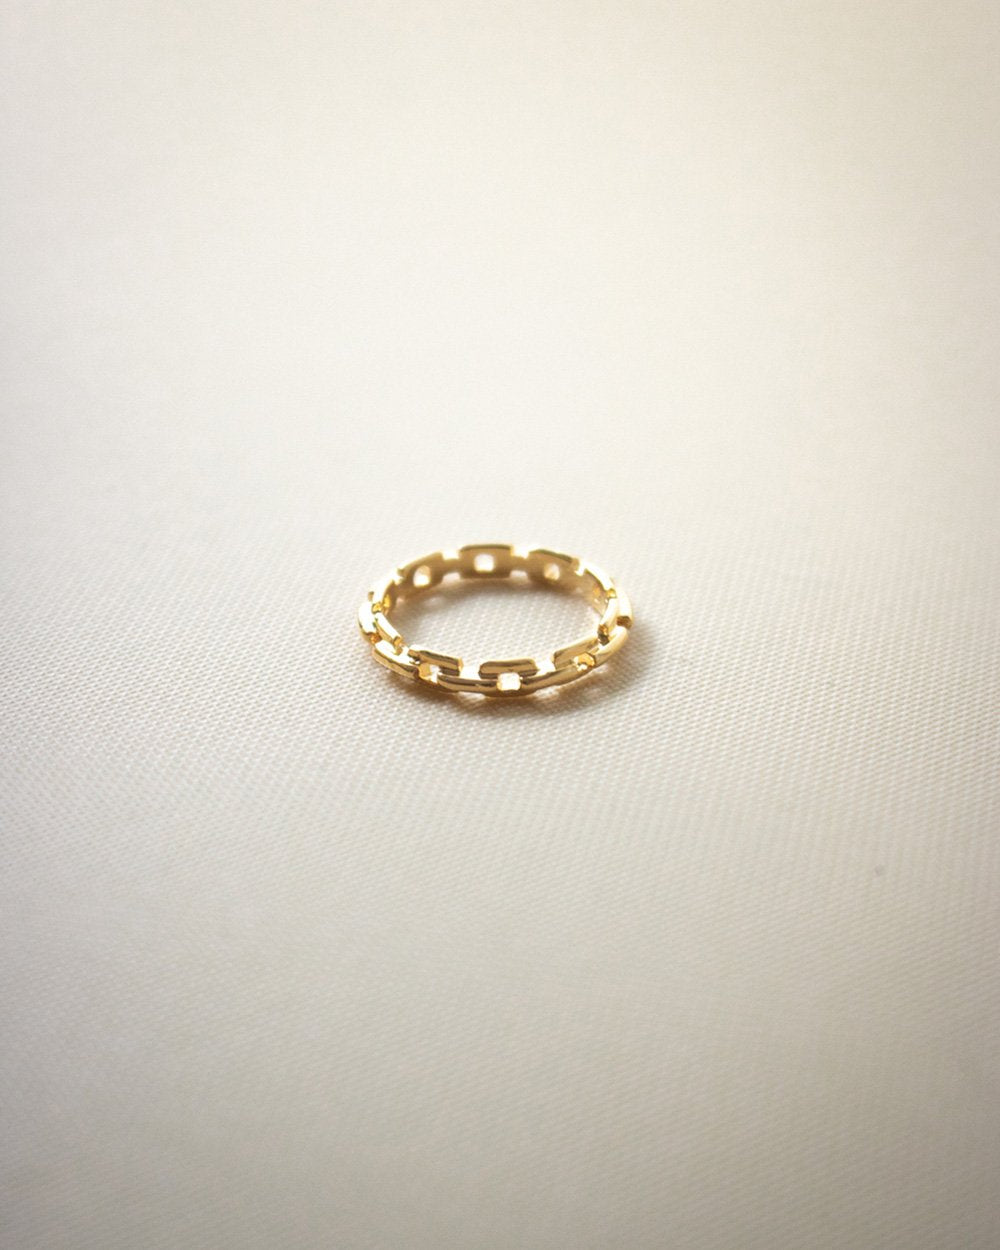 Thin, barely there gold ring with a subtle chain design @thehexad